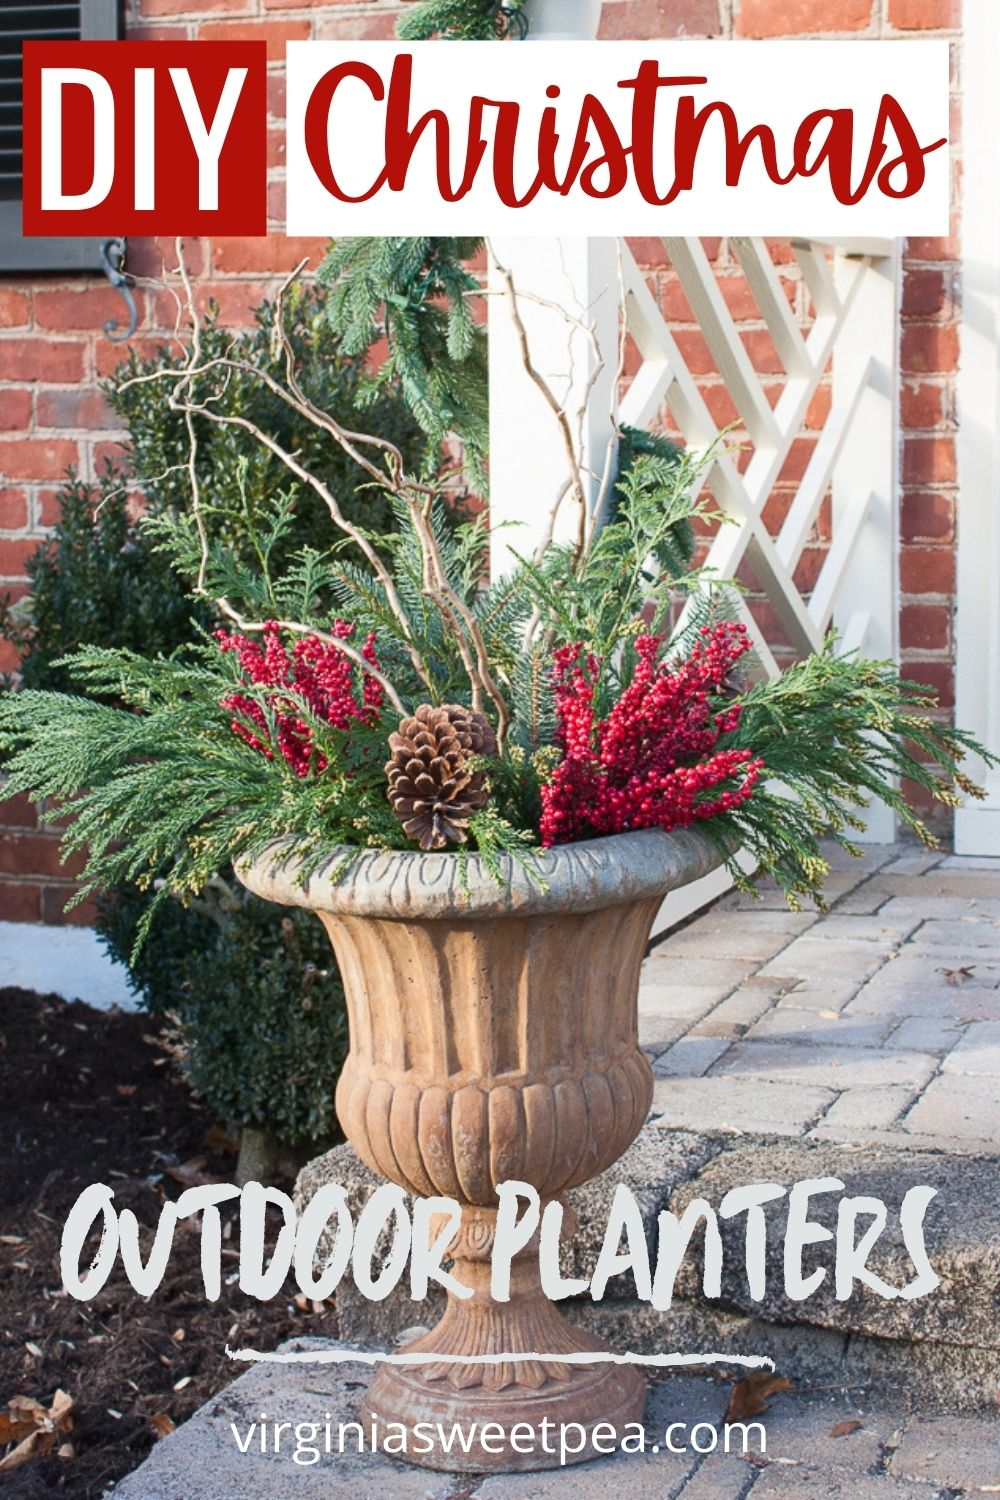 DIY Christmas Outdoor Planters - Learn how to decorated outdoor planters for Christmas  by following this step-by-step tutorial that uses greenery, berries, branches, and pinecones.   via @spaula